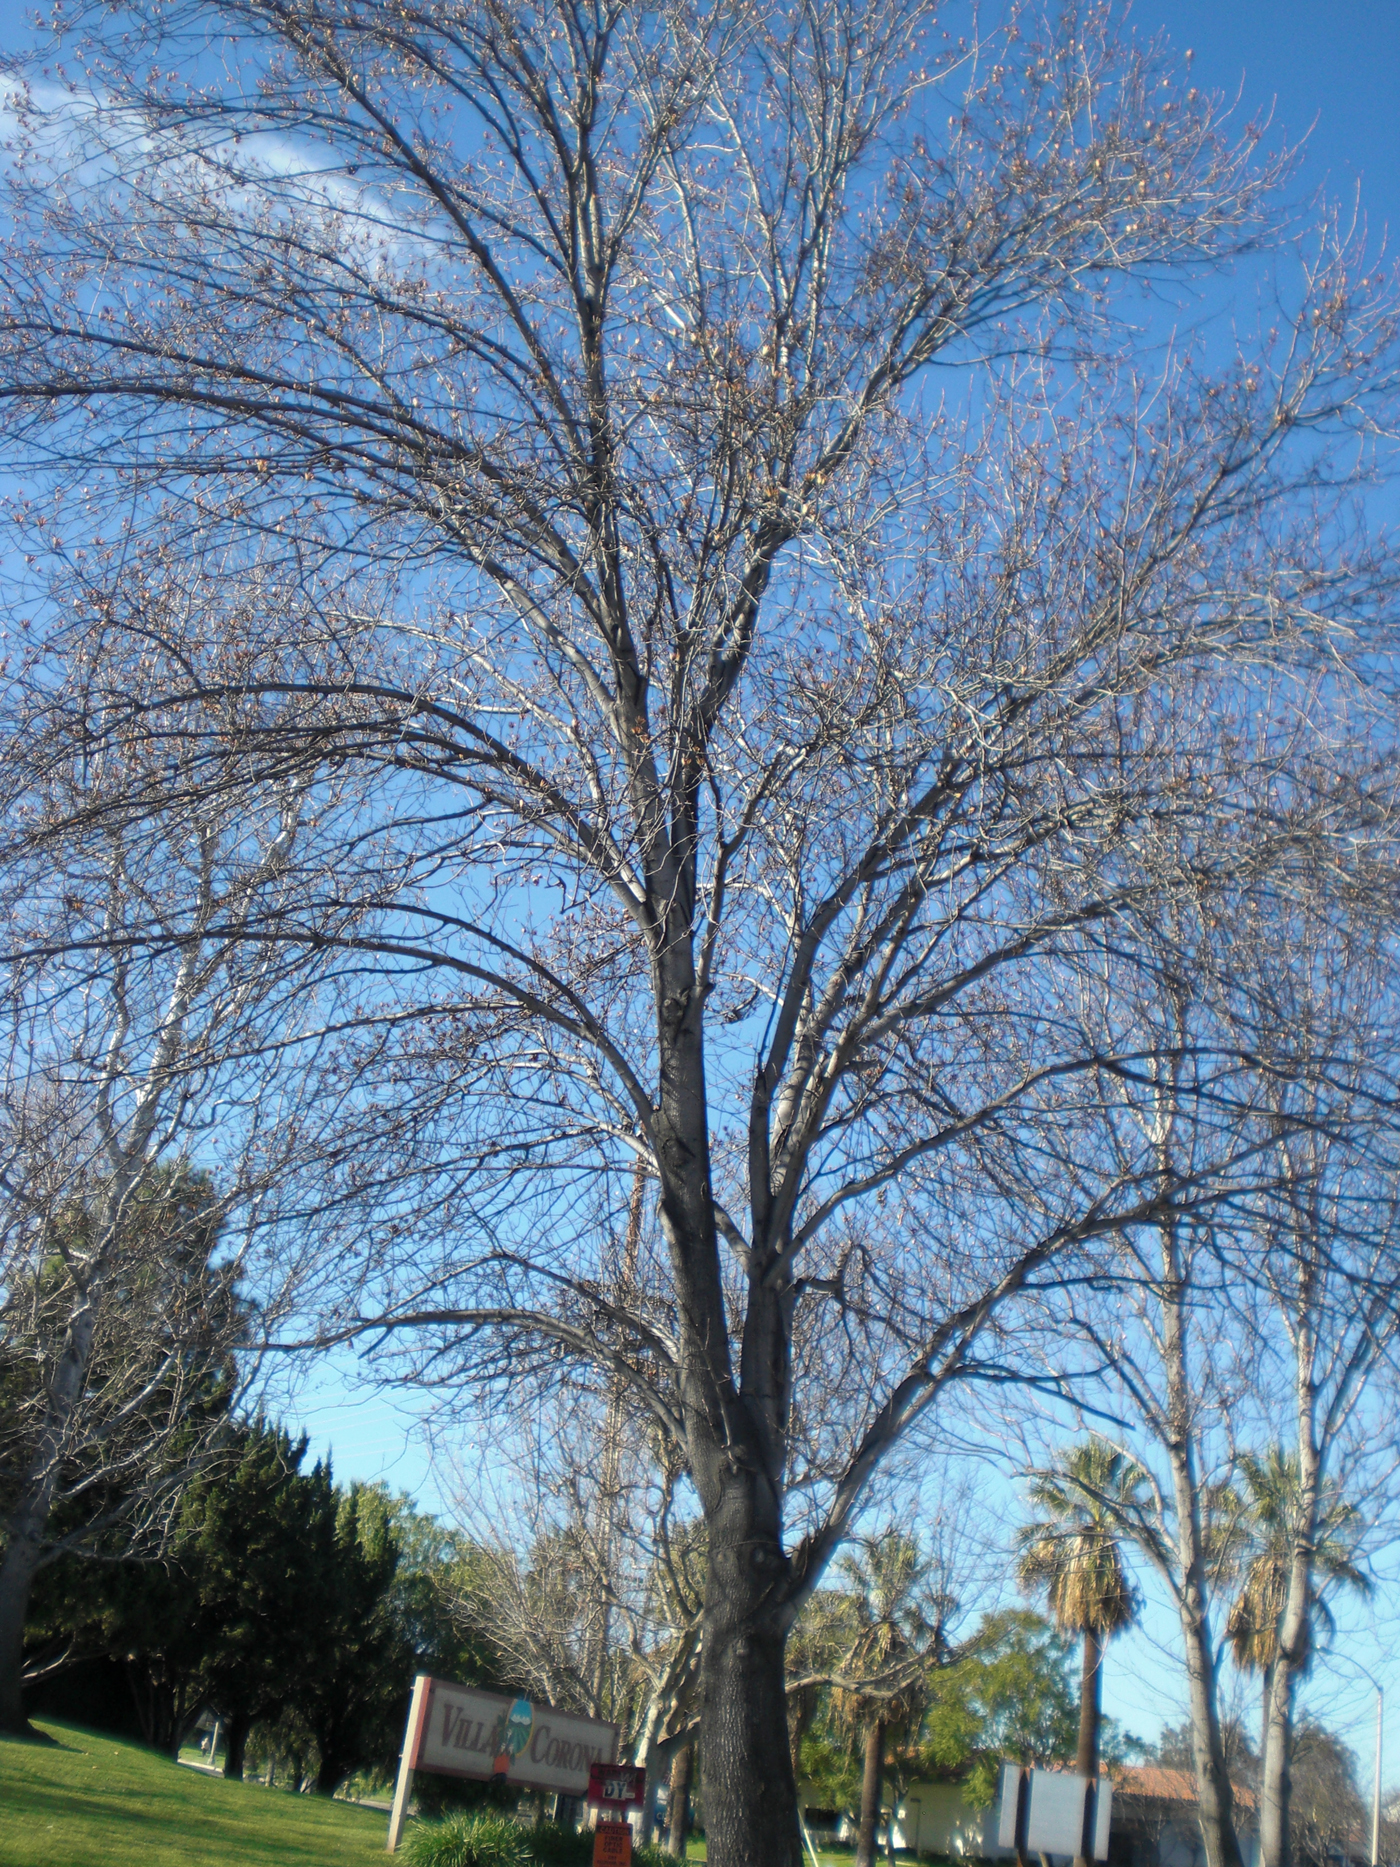 Endearing Plum Trees That Have No Idea How To Behave Because Very Deciduous Trees Weblog At Least Deciduous Trees Have Remained Bare Branched This Those Ornamentalpear houzz-03 Ornamental Pear Tree